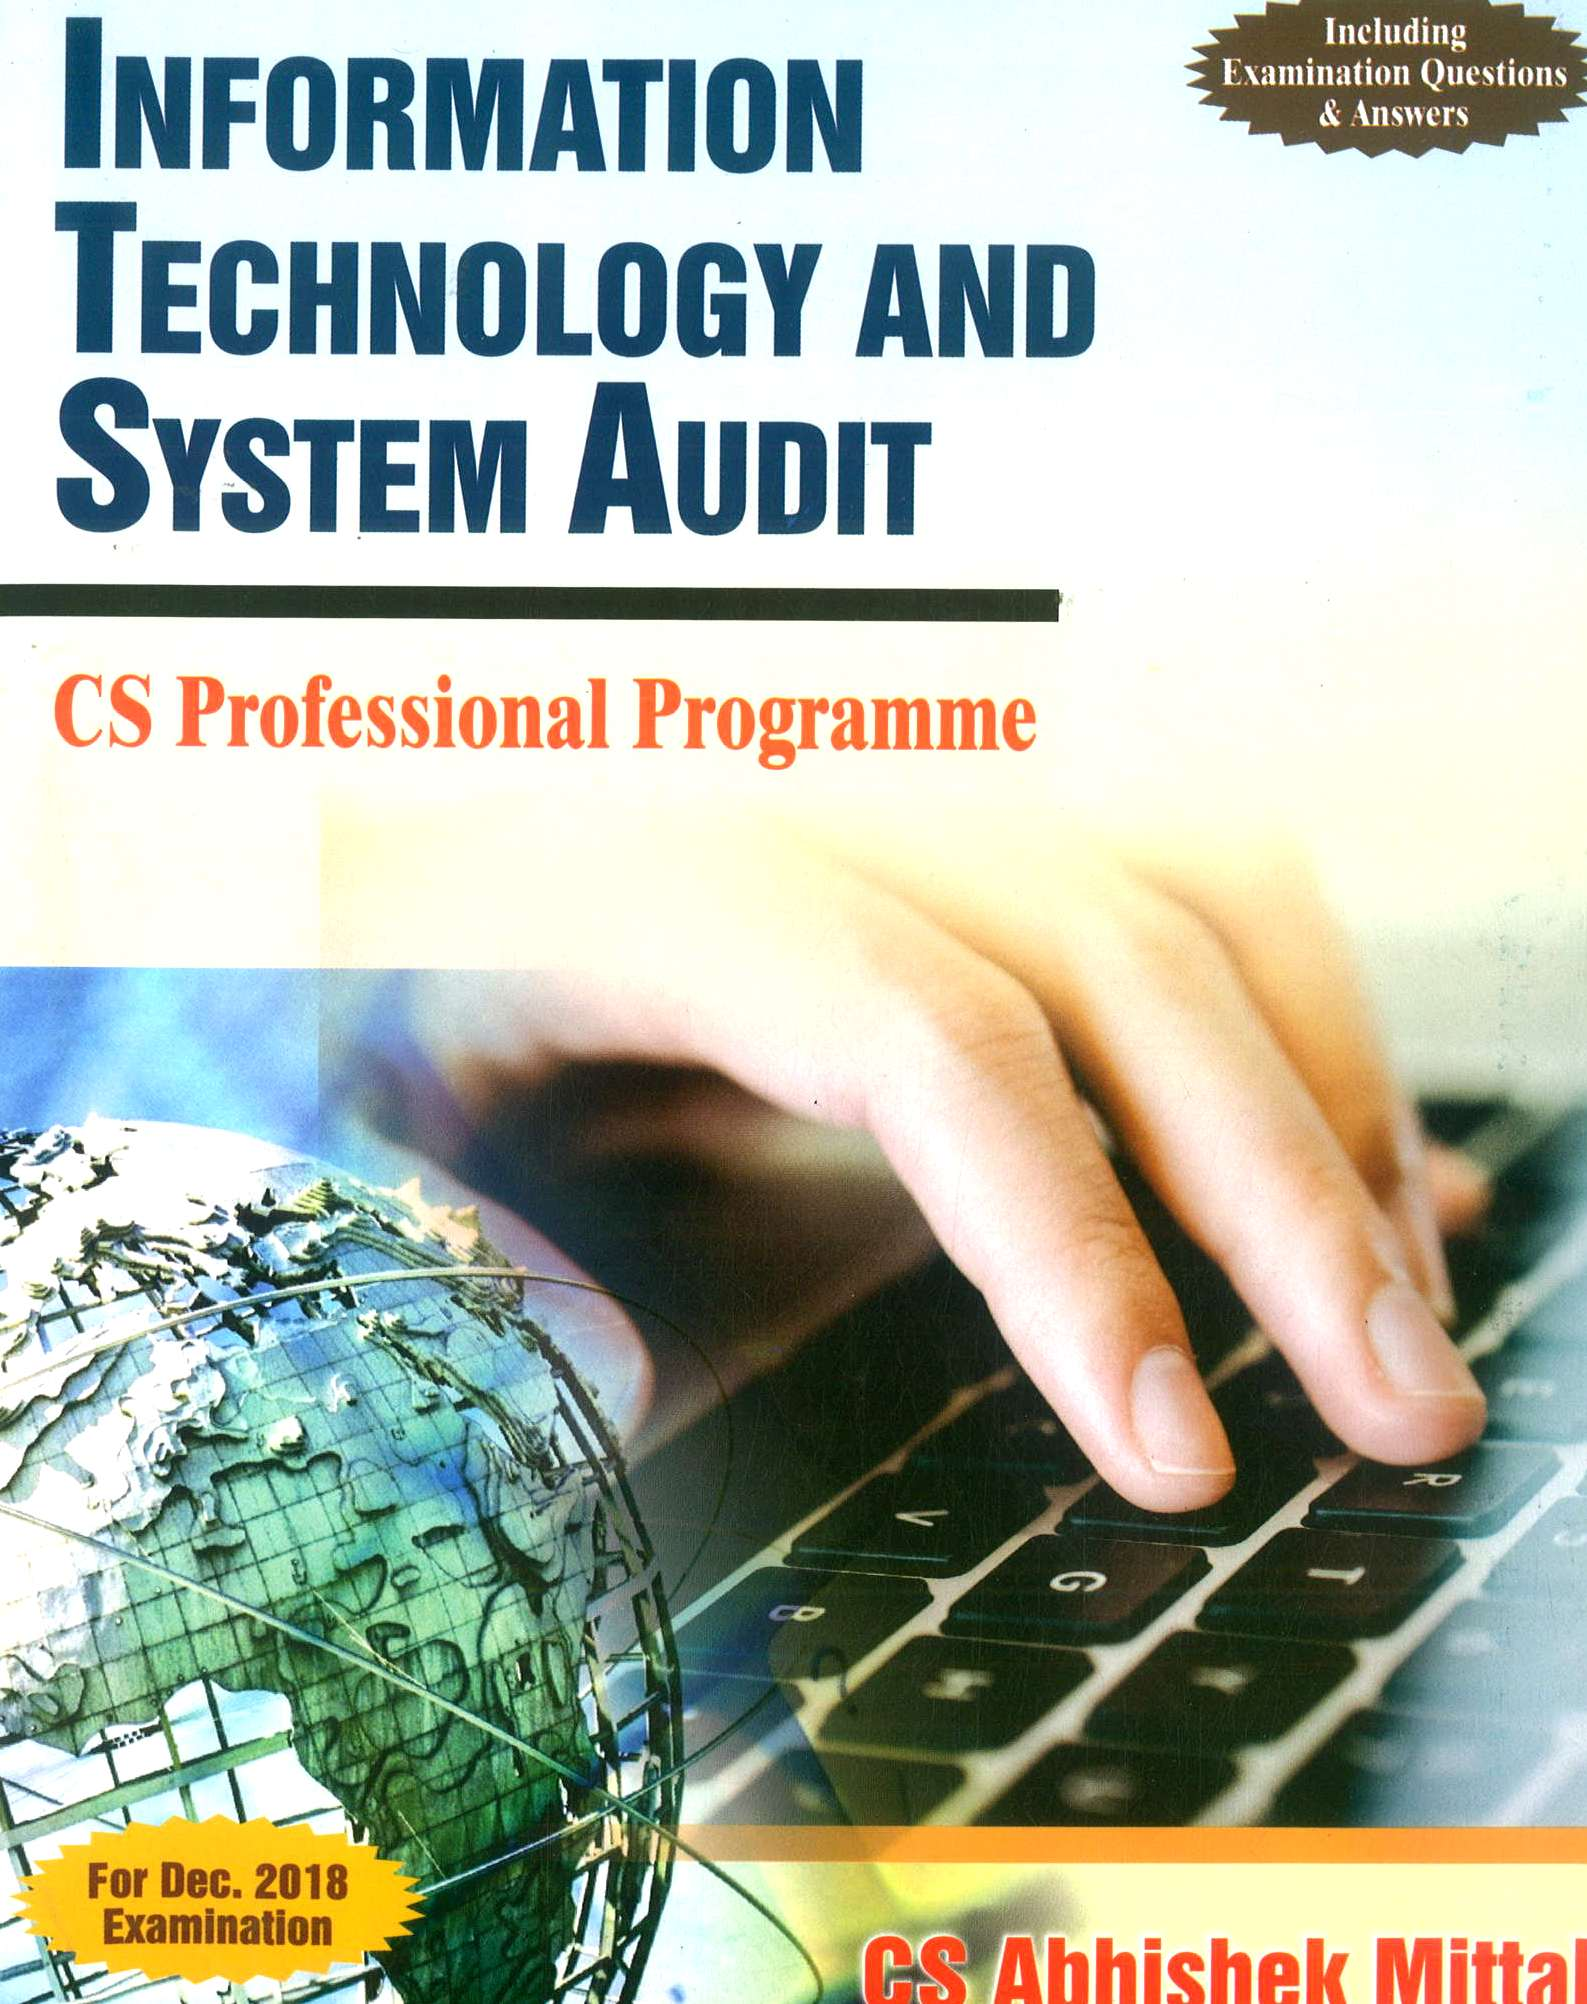 Sangeet kedia CS Professional Programme Information Technology And Systems Audit By Abhishek Mittal Applicable for Dec 2018 Exam